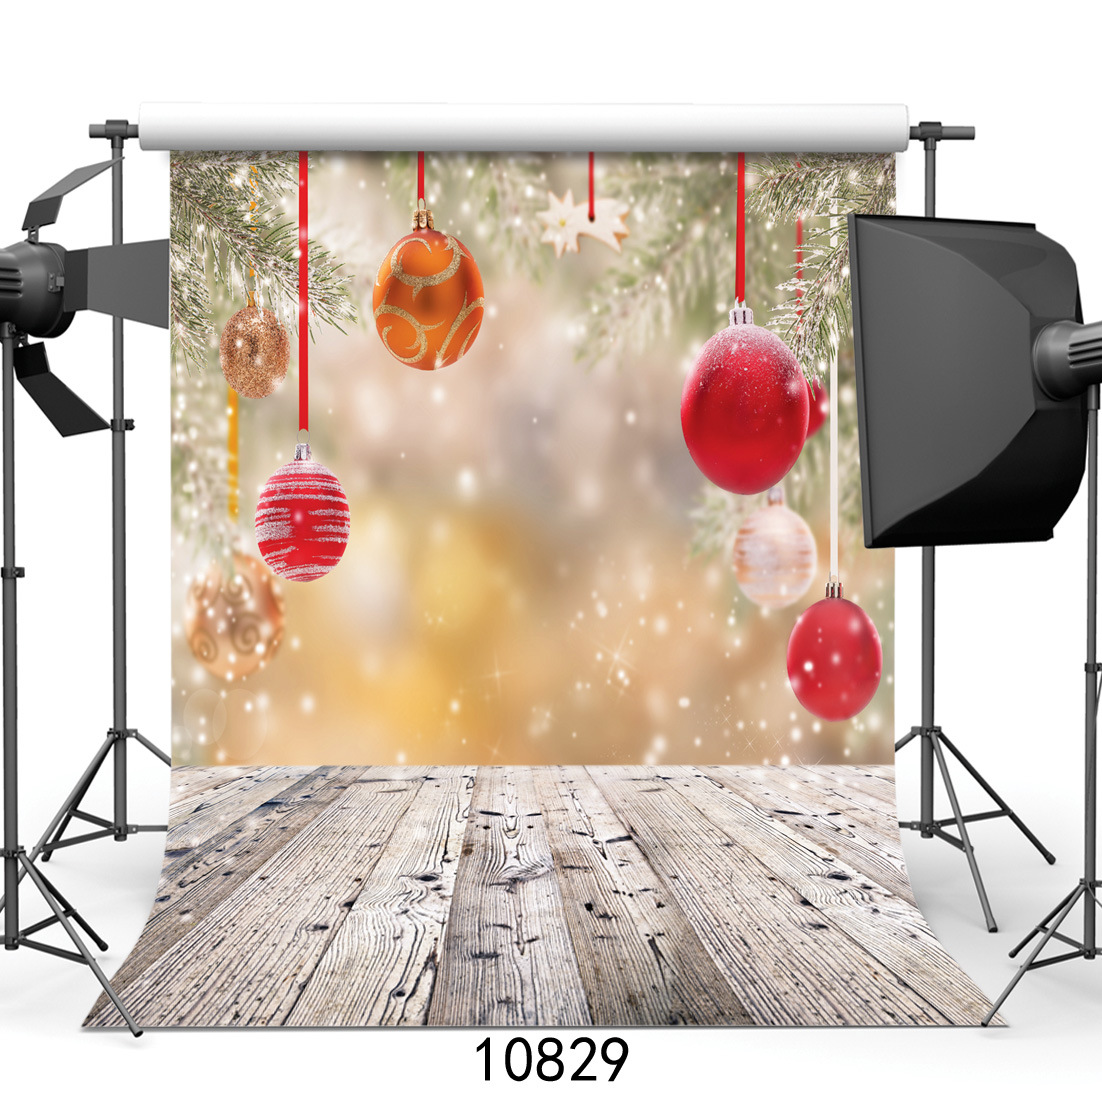 Christmas Party Decoration Photography Backdrops Wood Floor Studio Photo Background